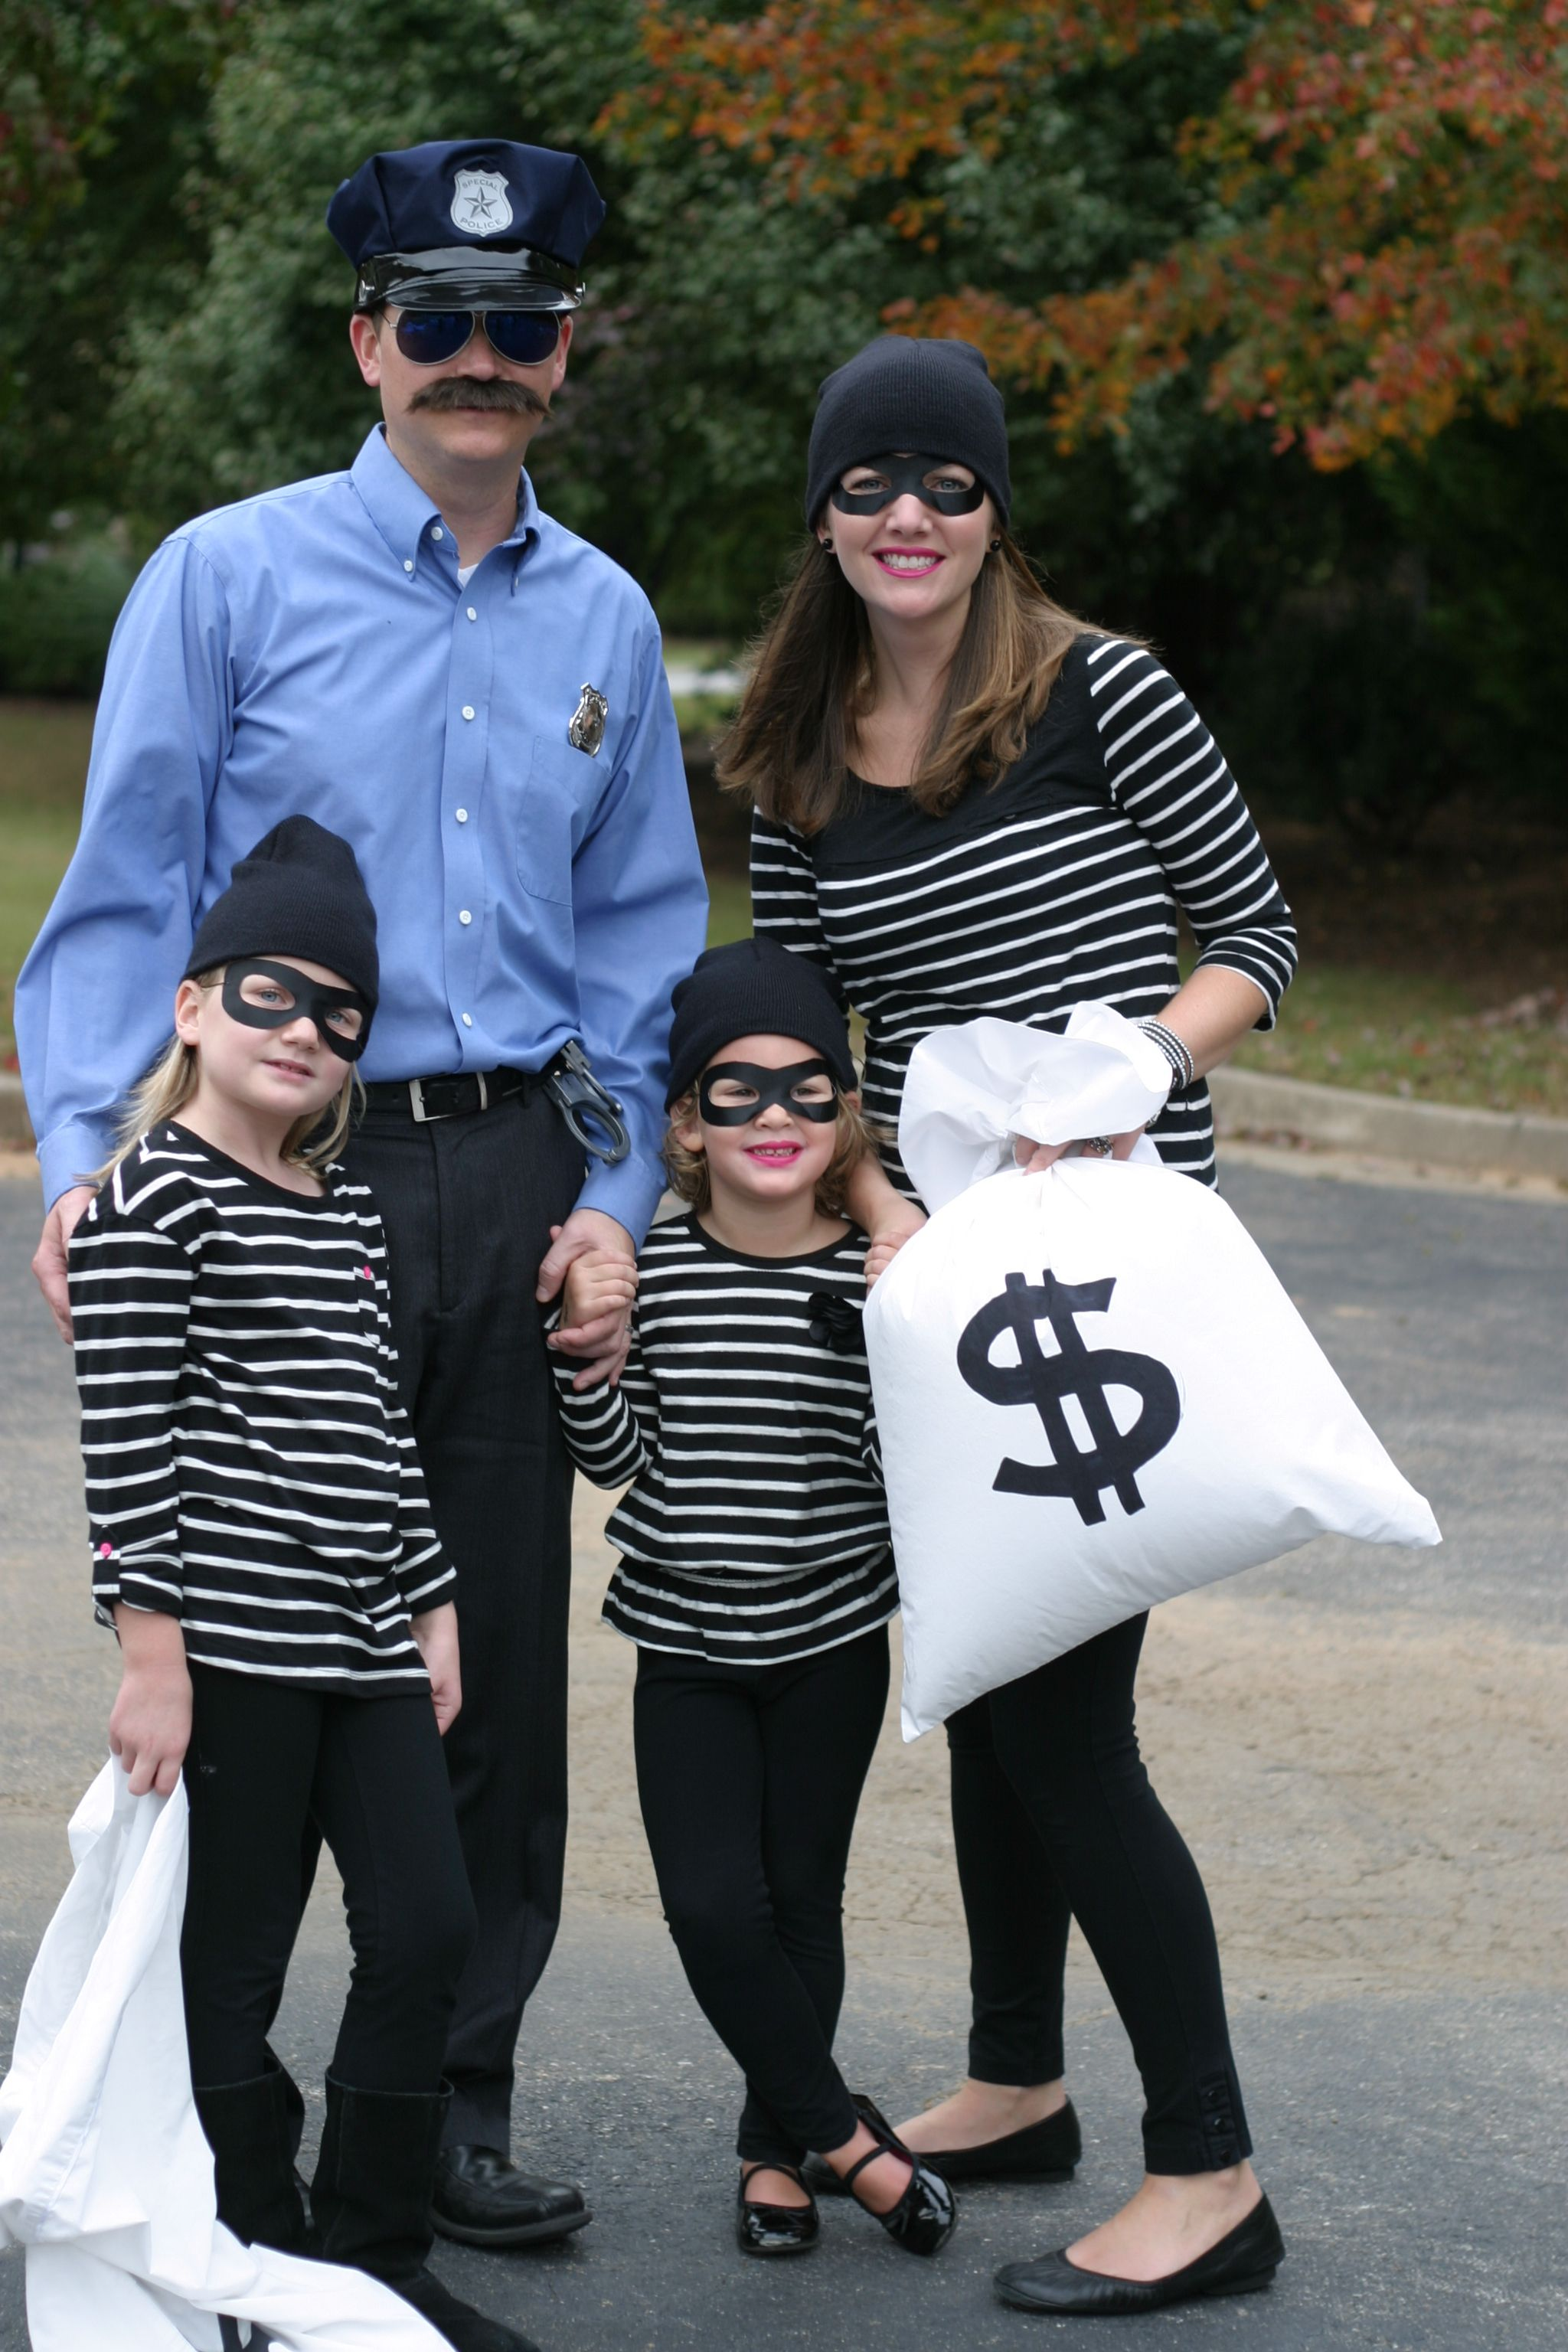 f6f8b436 Family Halloween Costume. Cop and Robbers. Really easy and fun costume idea